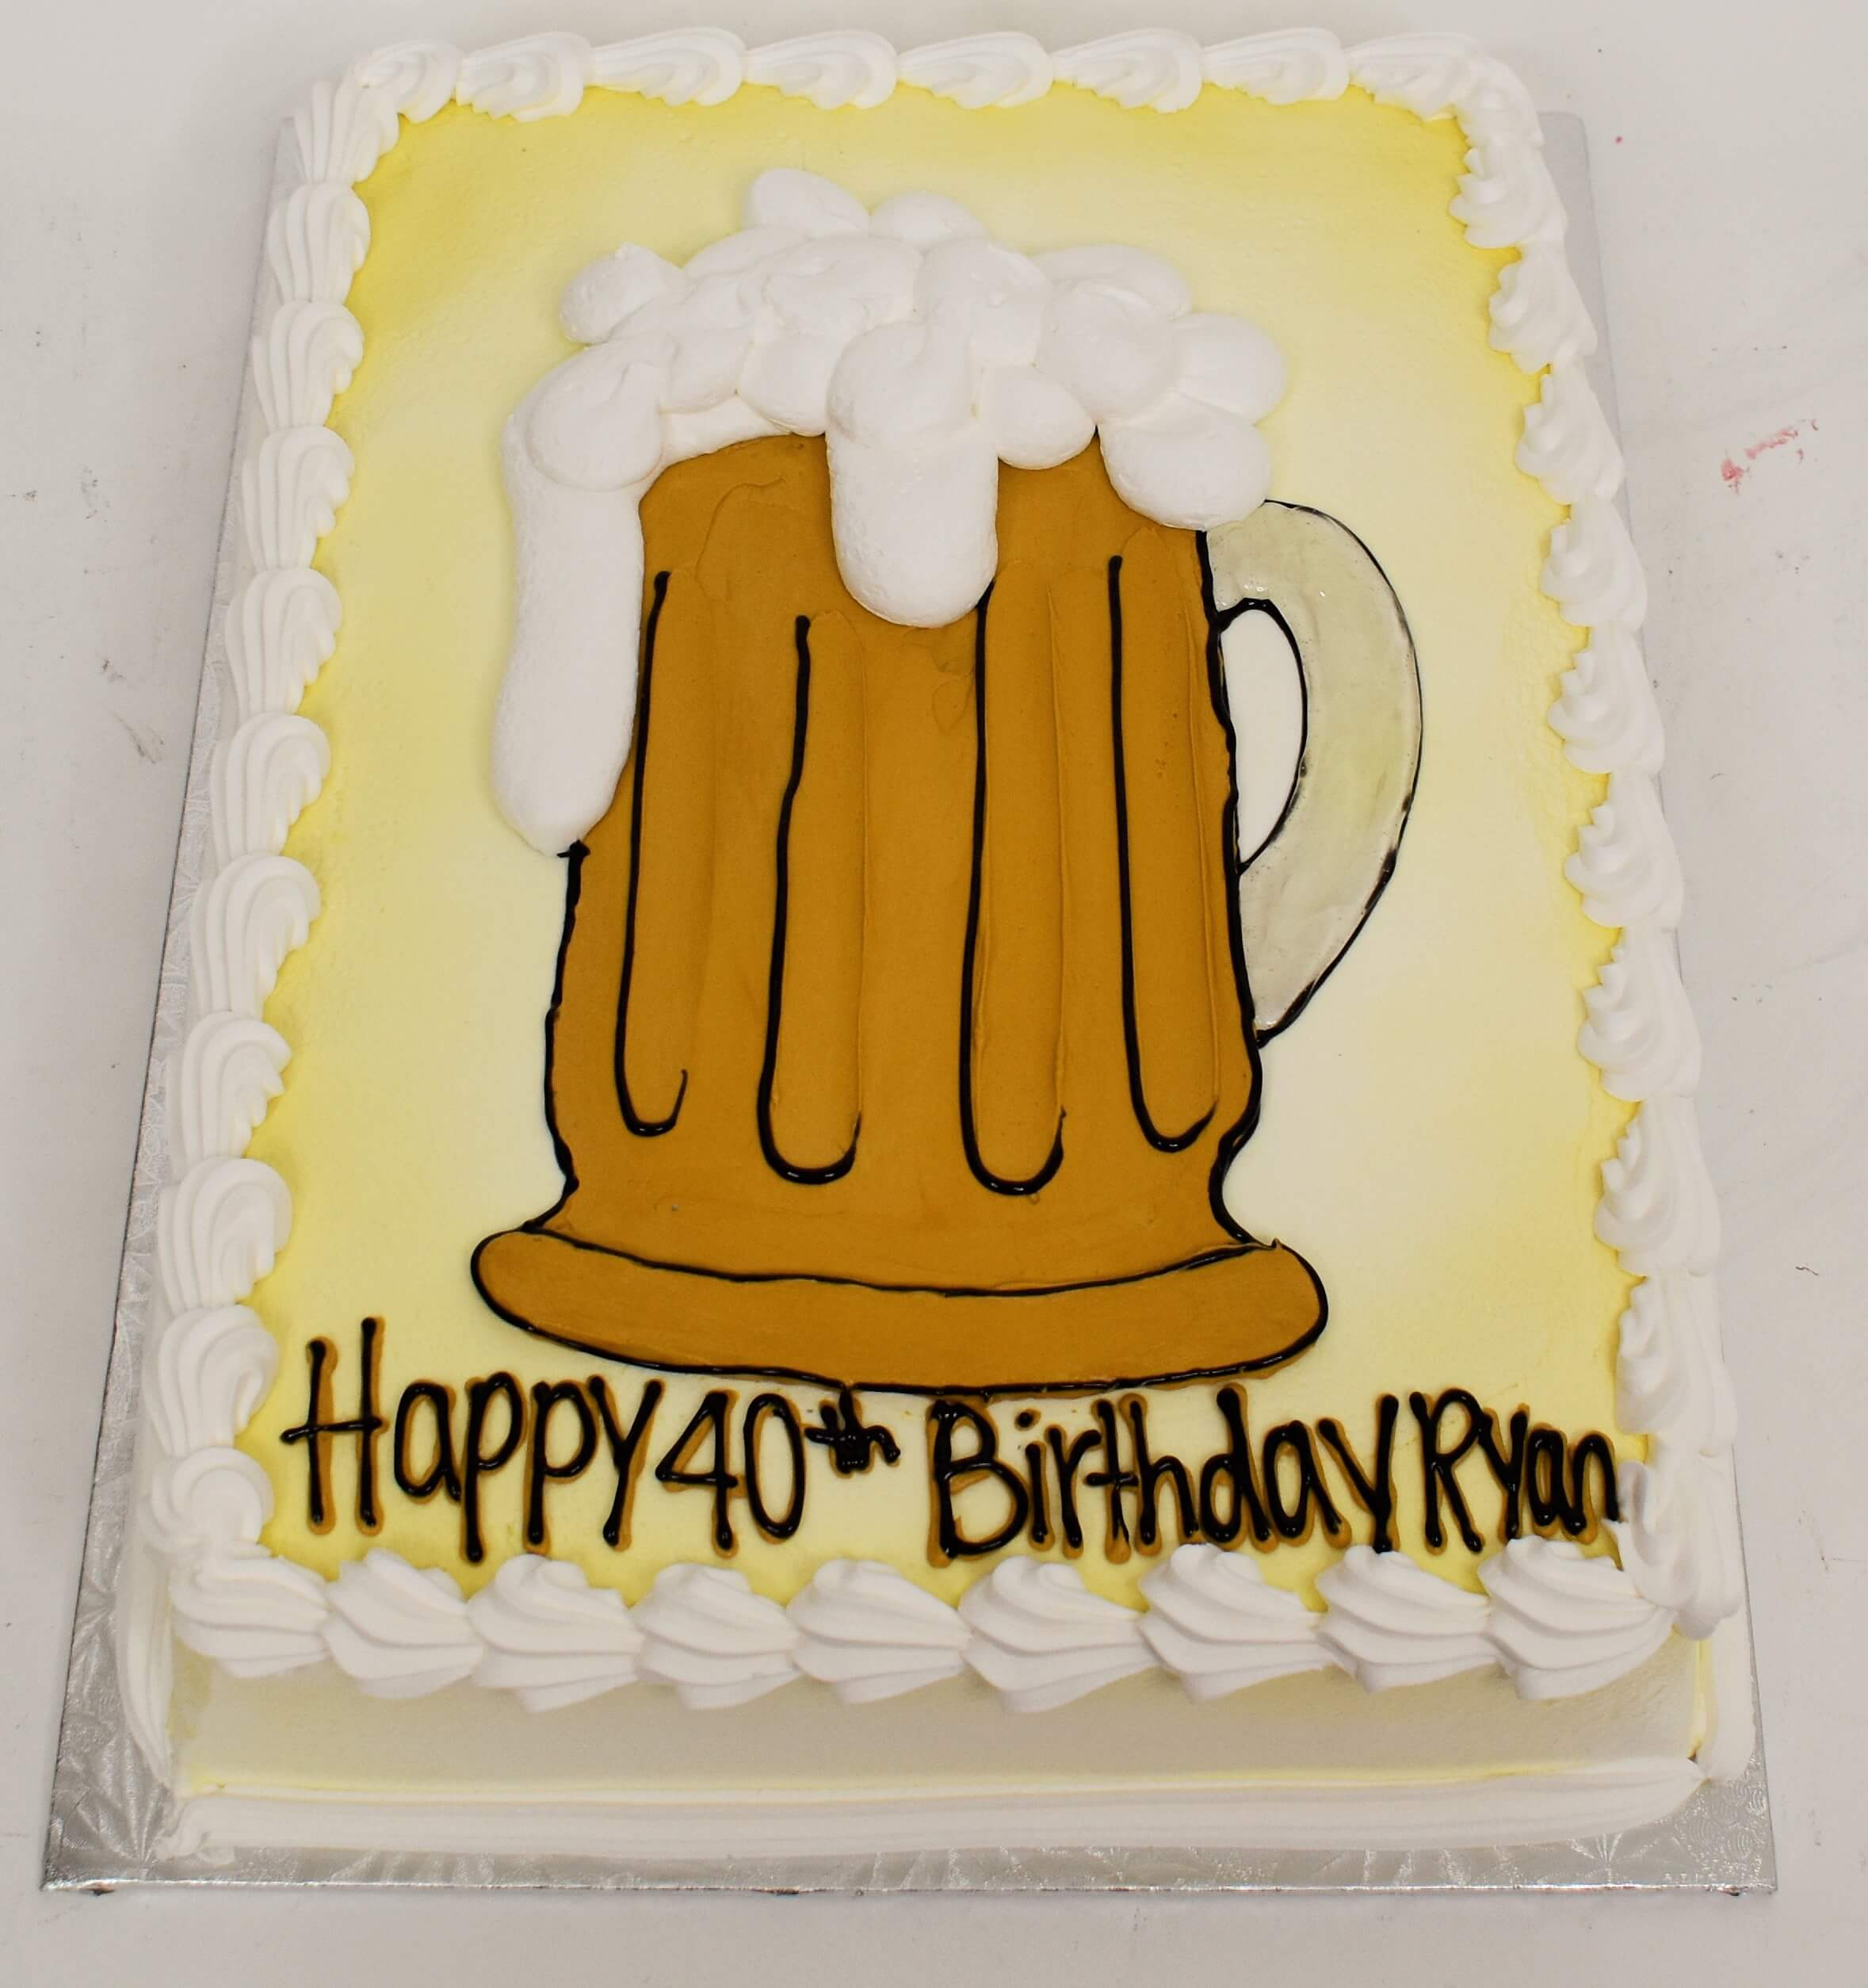 McArthur's Bakery Custom Cake With Beer Mug